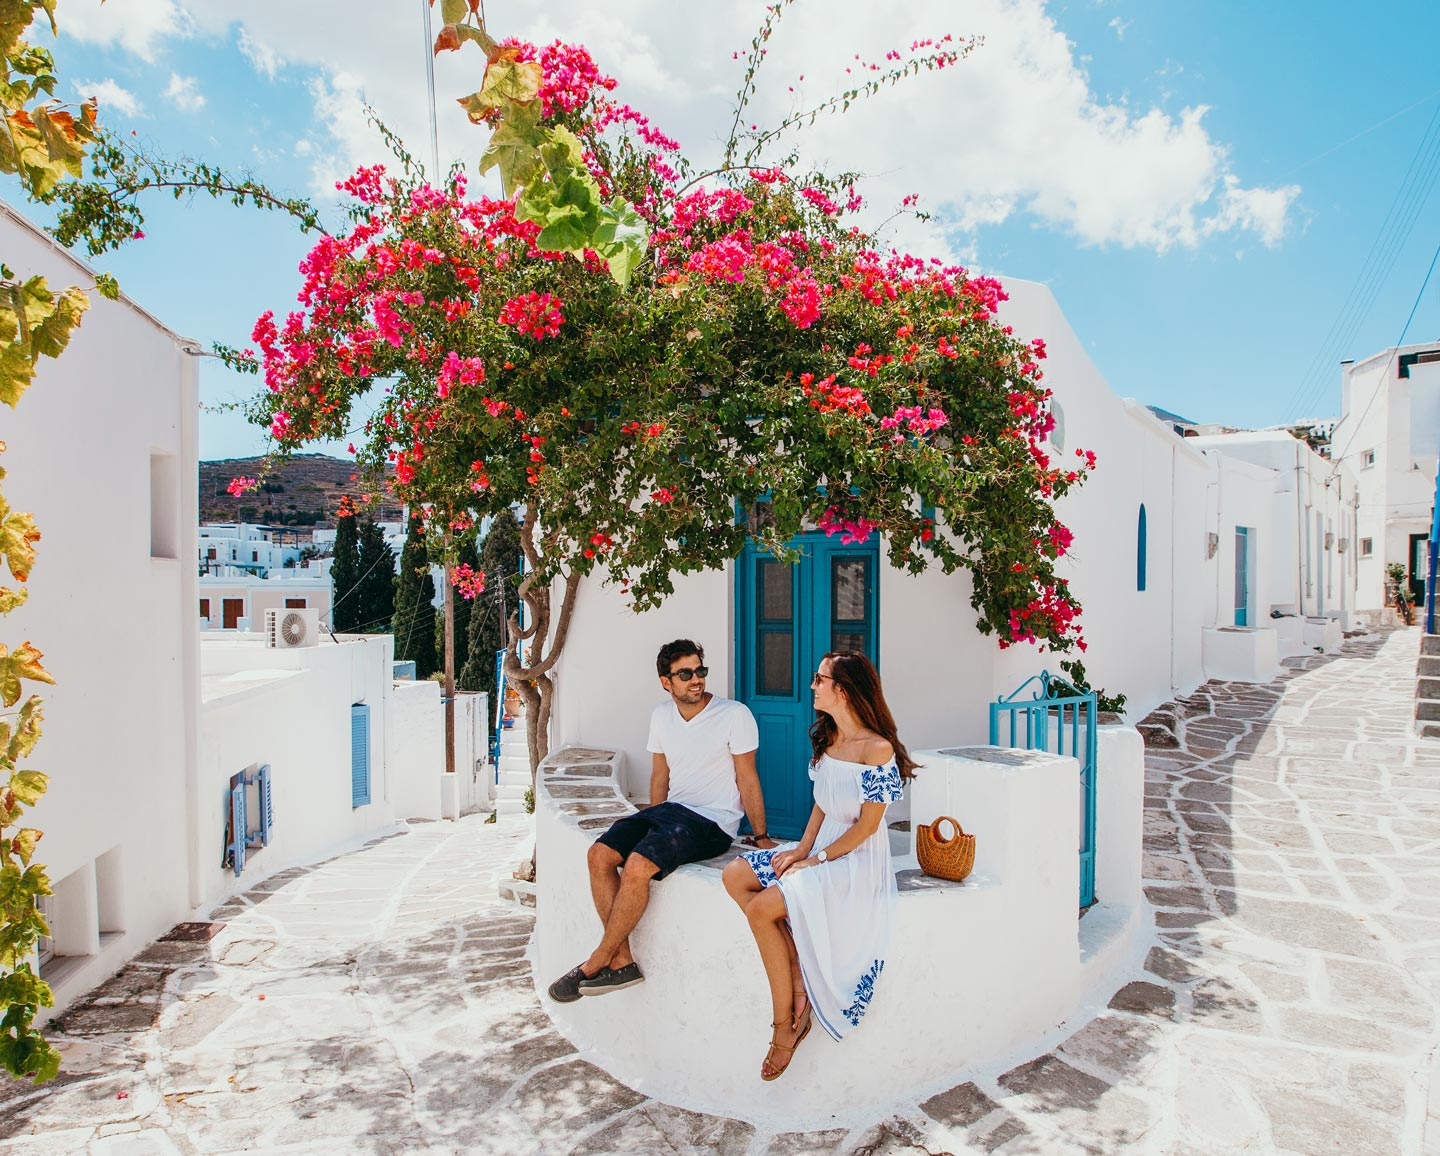 lefkes-paros-greece-village-flowers-katerina-yinon